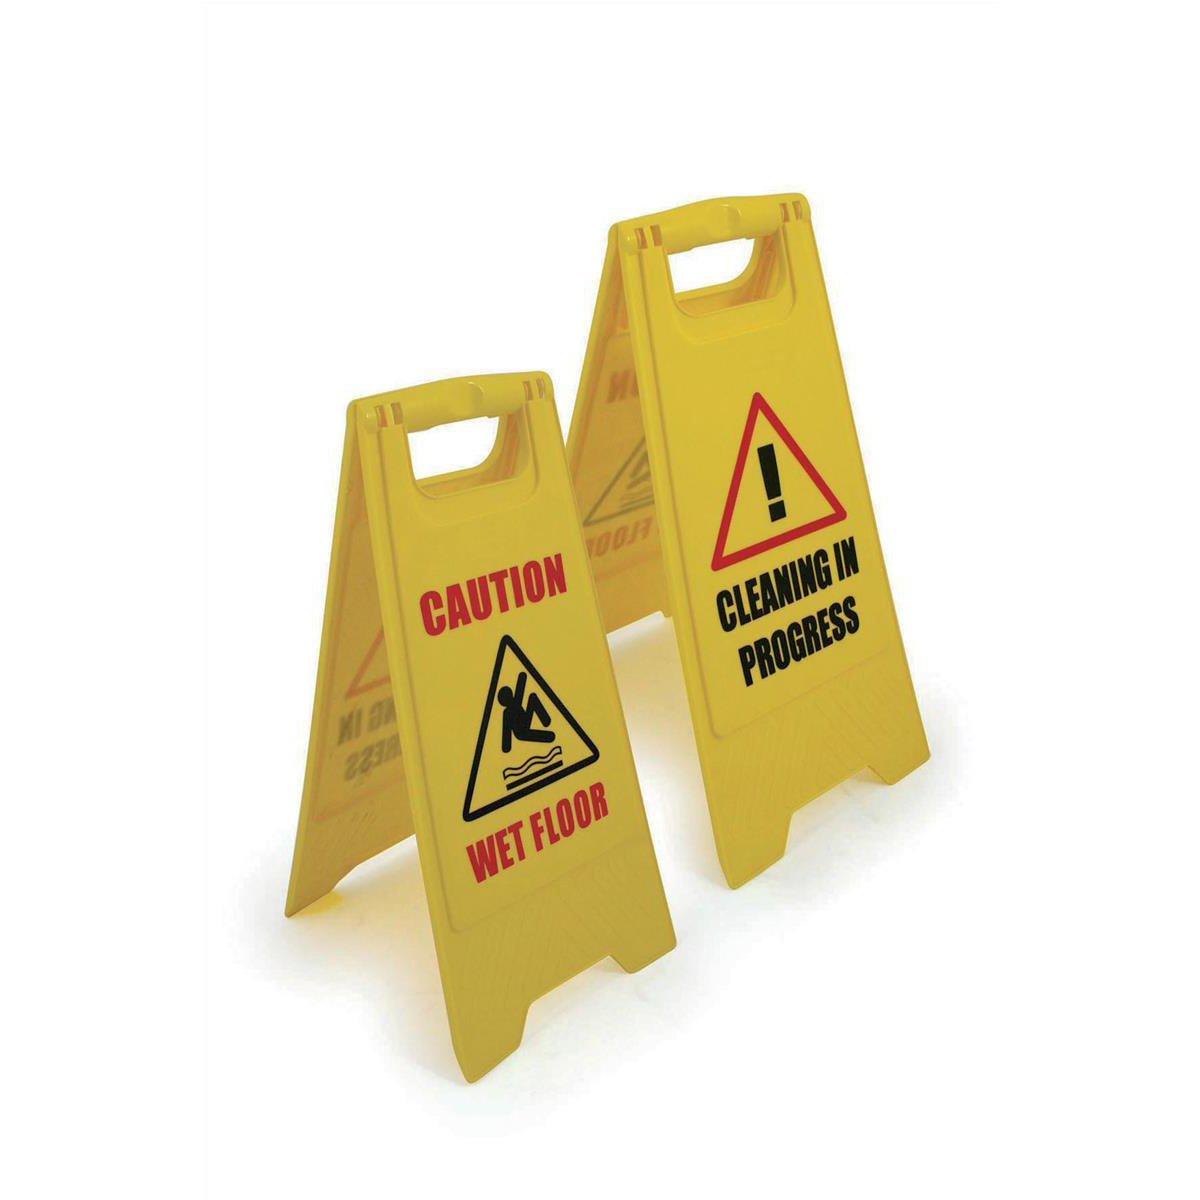 Signs Single A Frame Sign 2 Sided 2 Messages Caution Wet Floor/Cleaning in Progress Yellow